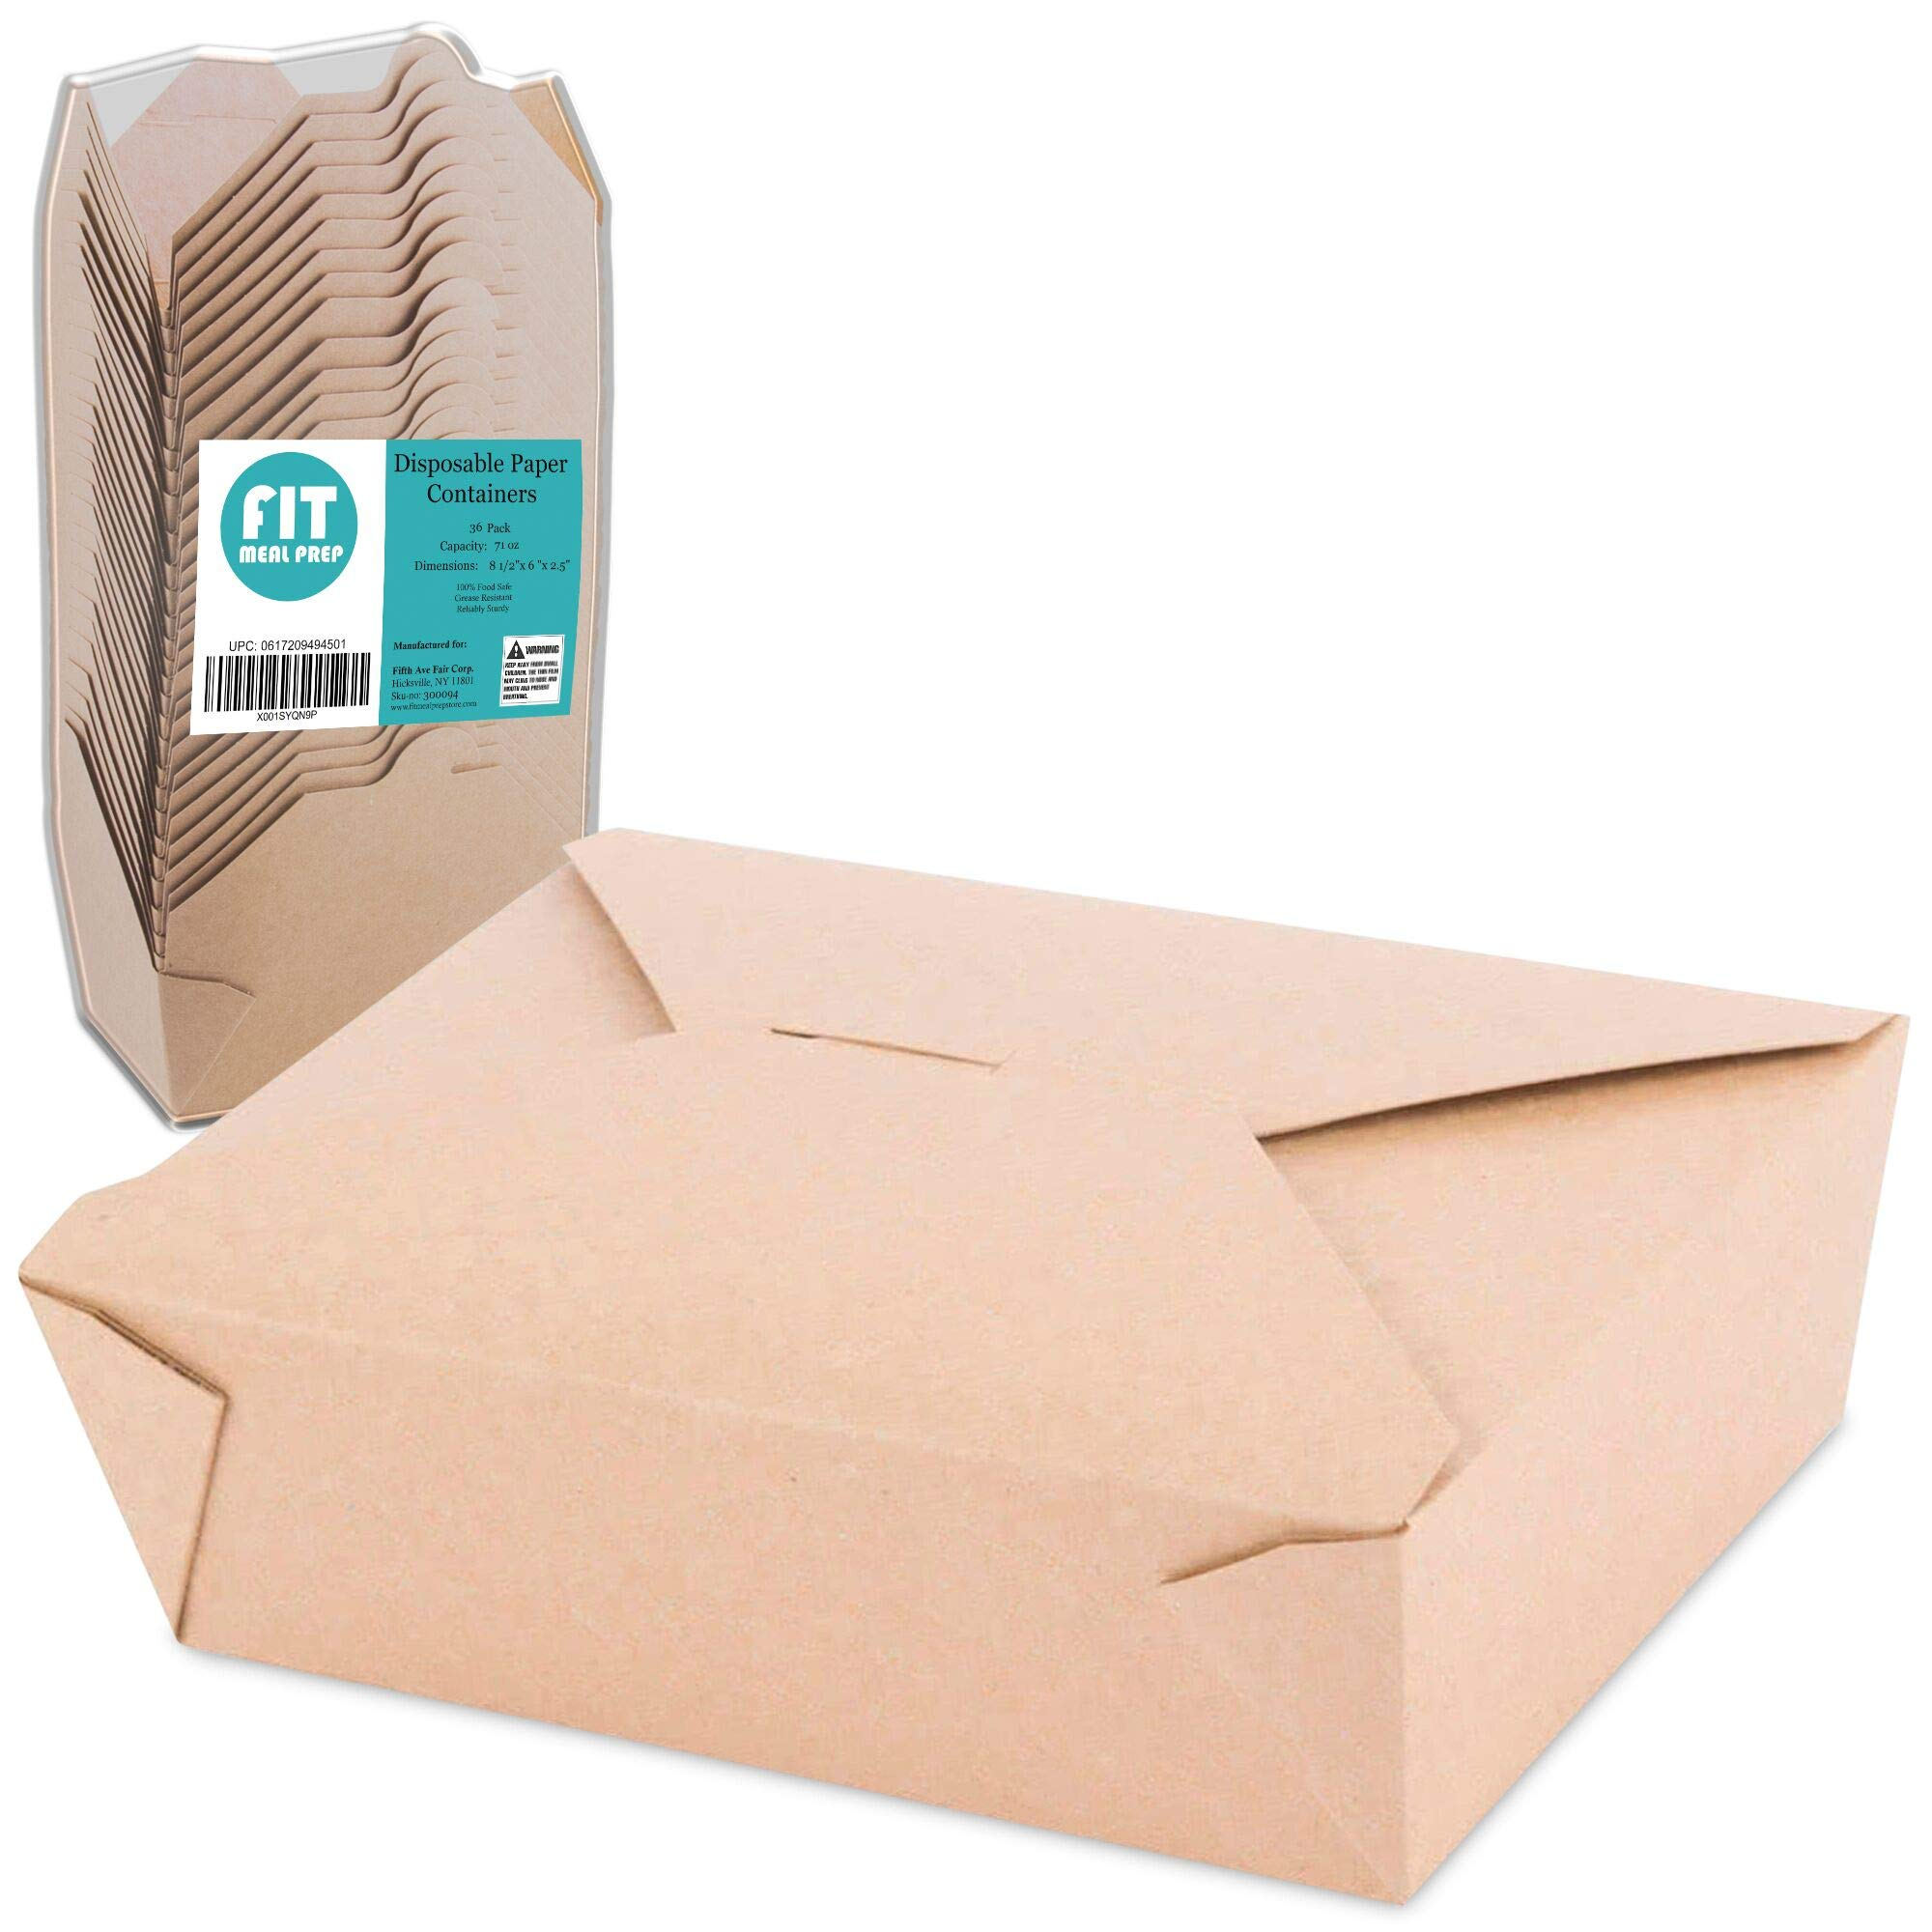 [36 Pack] 71 oz 8.5 x 6 x 2.5'' Disposable Paper Take Out Food Containers, Microwaveble Folding Natural Kraft to Go Boxes #3